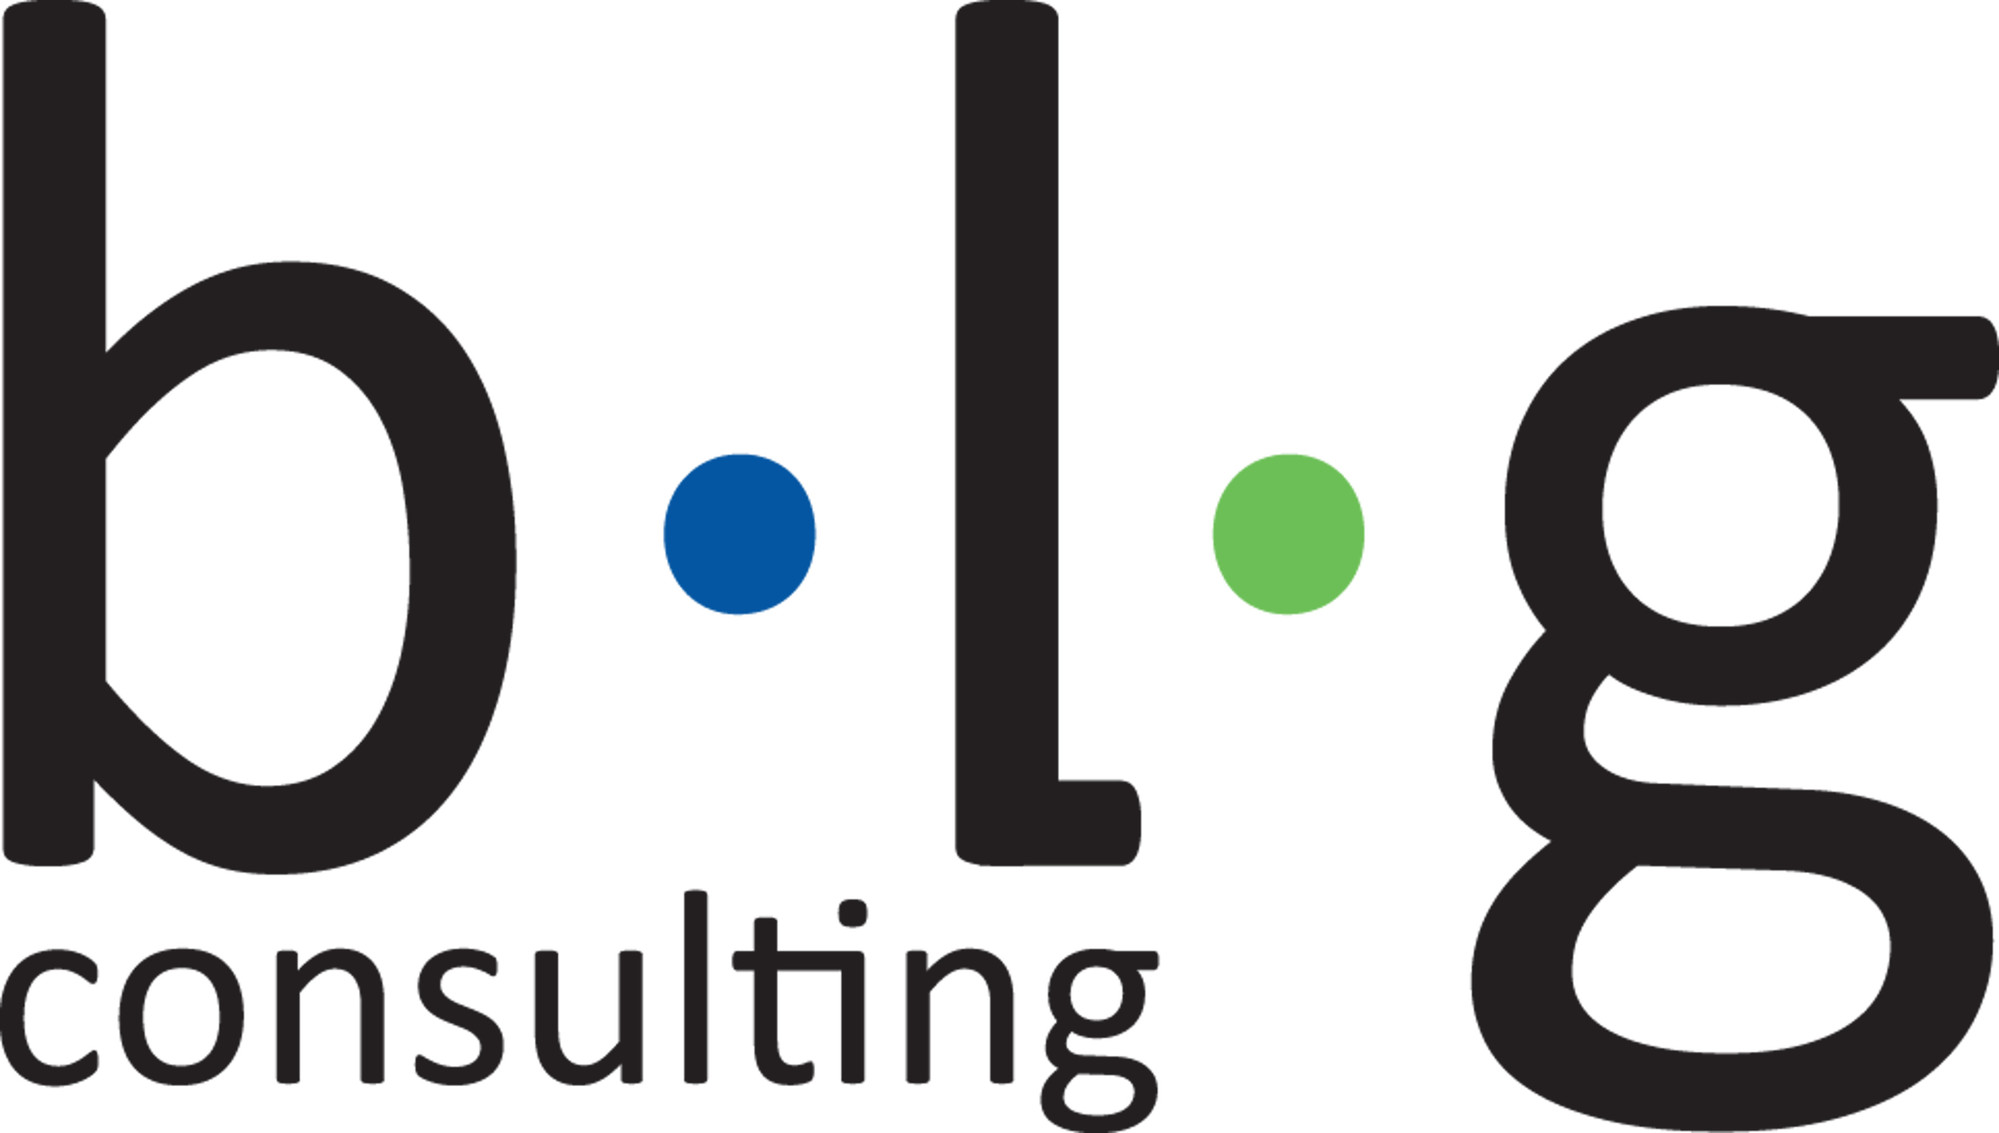 BLG CONSULTING - FORMATION, CONSEIL